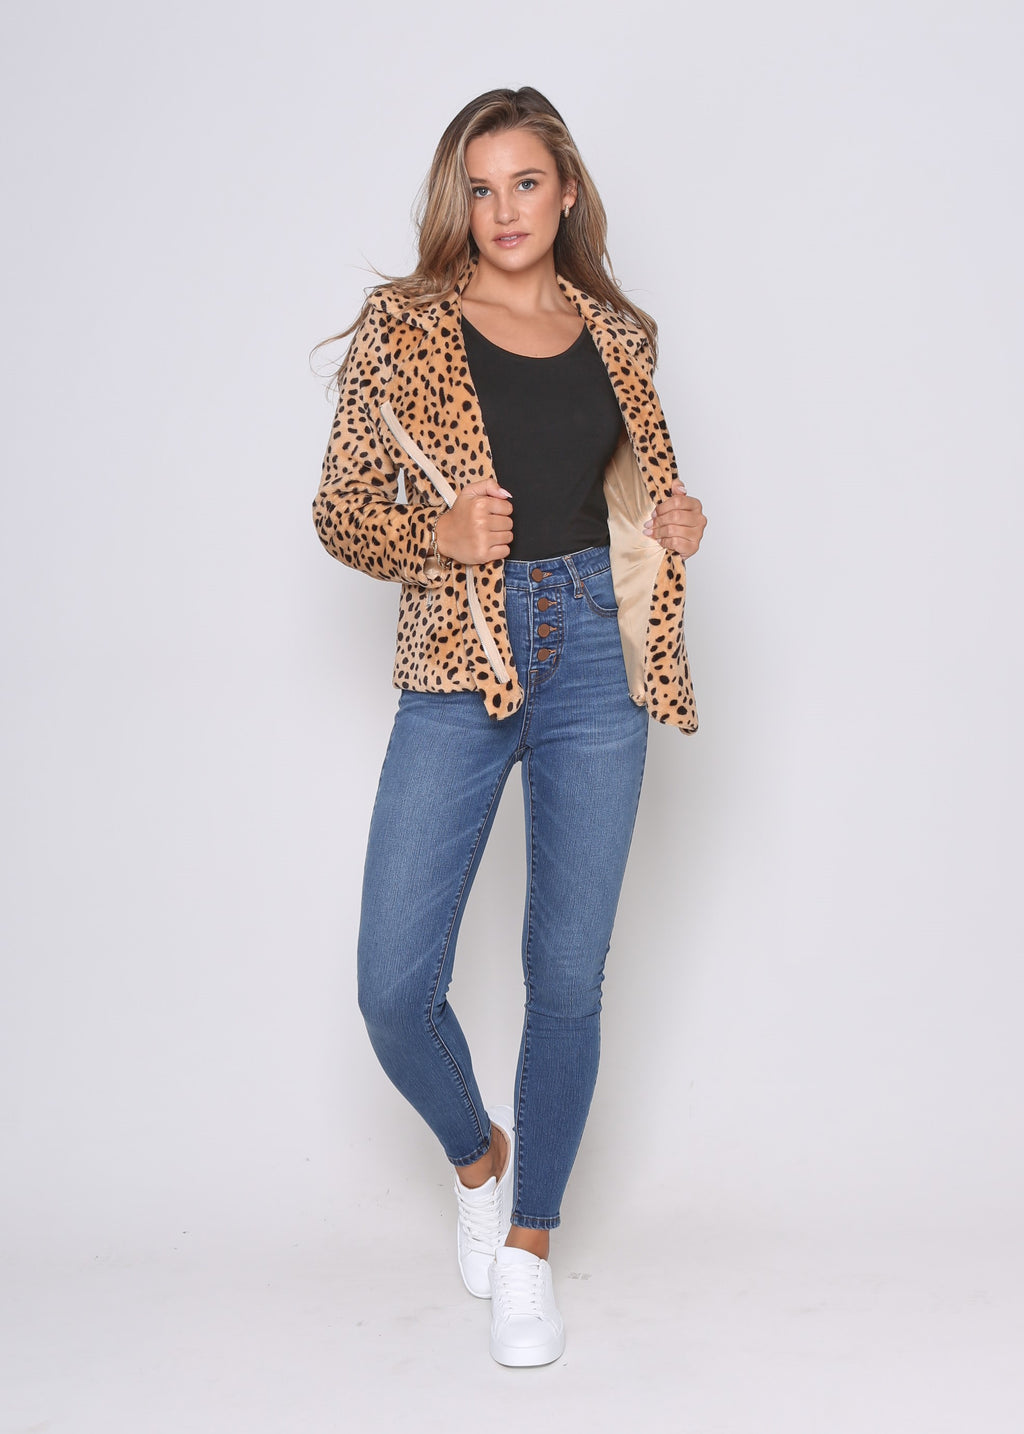 MONICA JACKET - CAMEL CHEETAH